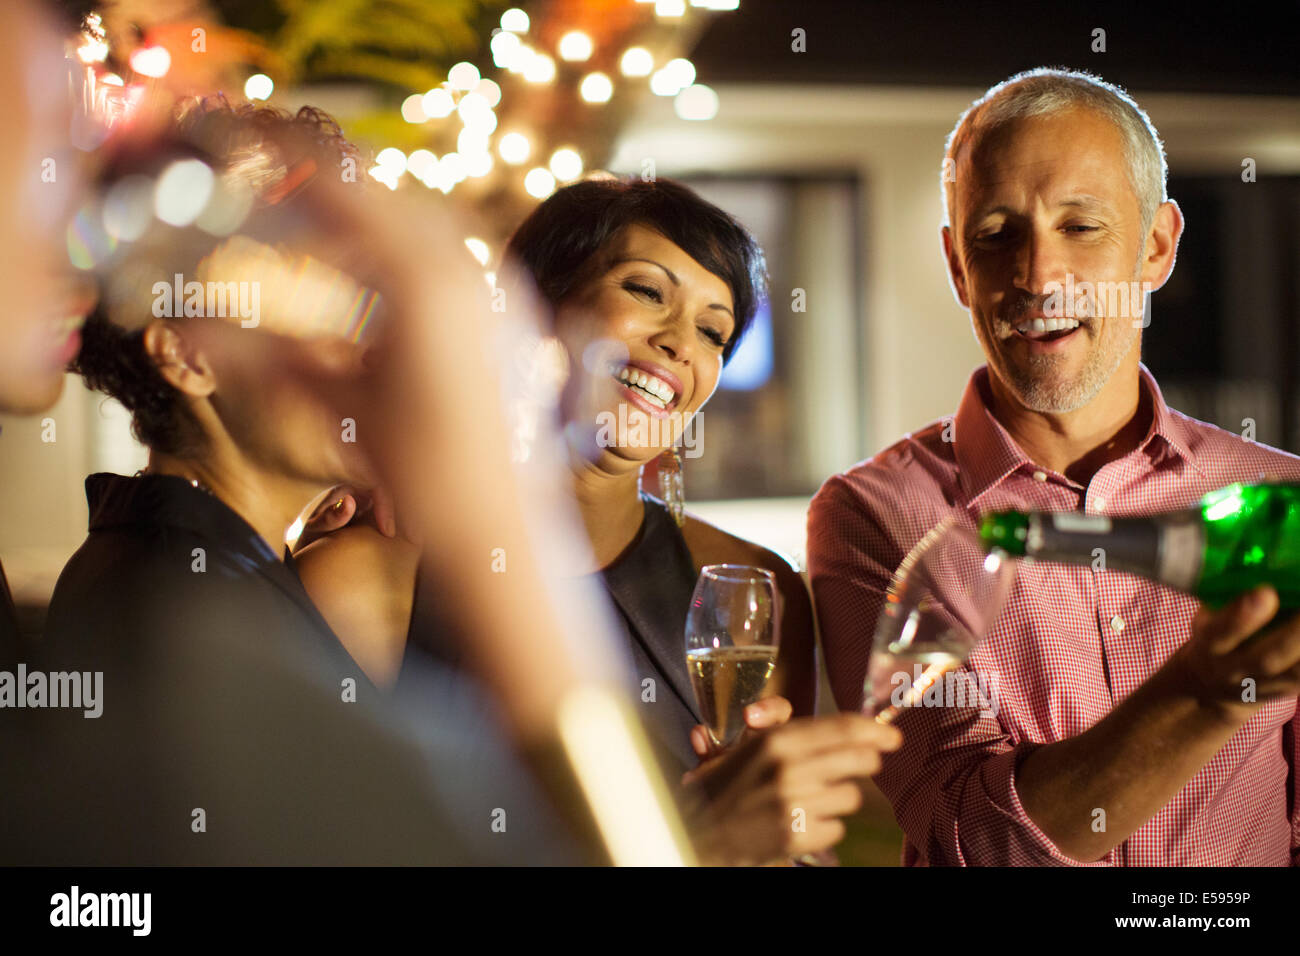 Friends drinking champagne at party Photo Stock